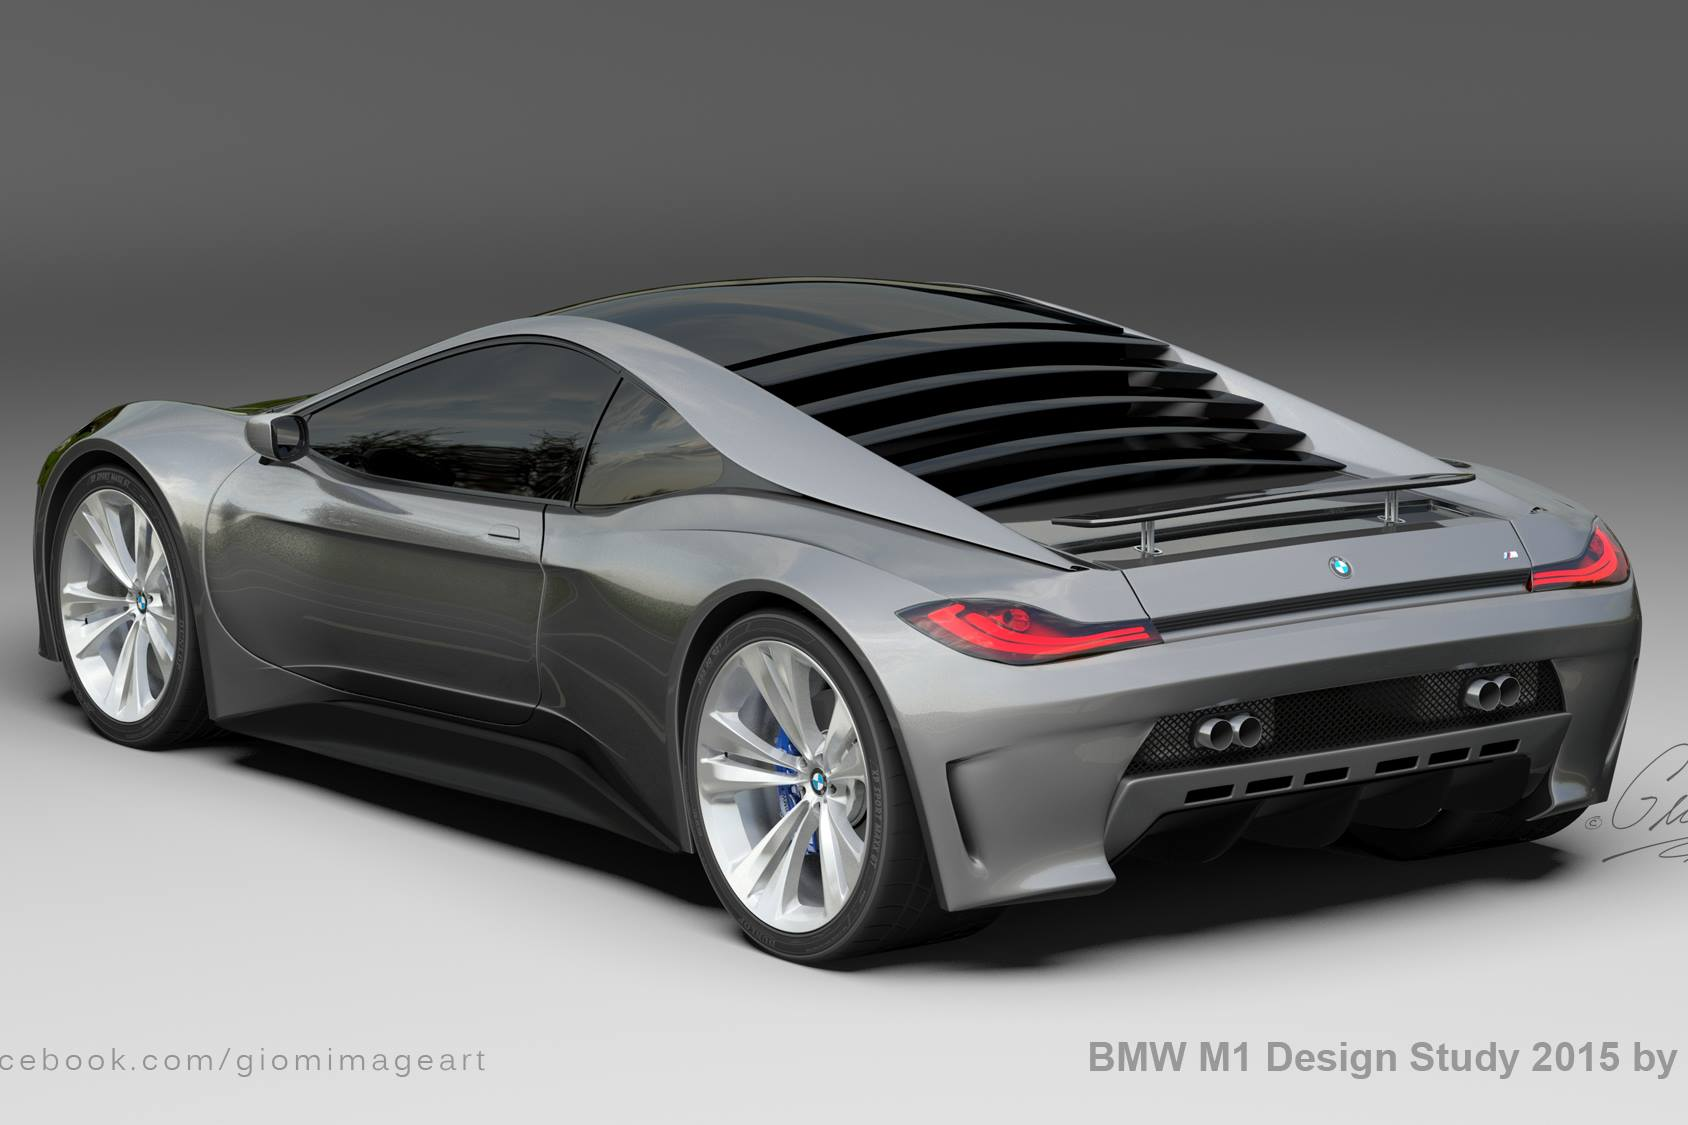 Modern Day Bmw M1 Imagined Gtspirit